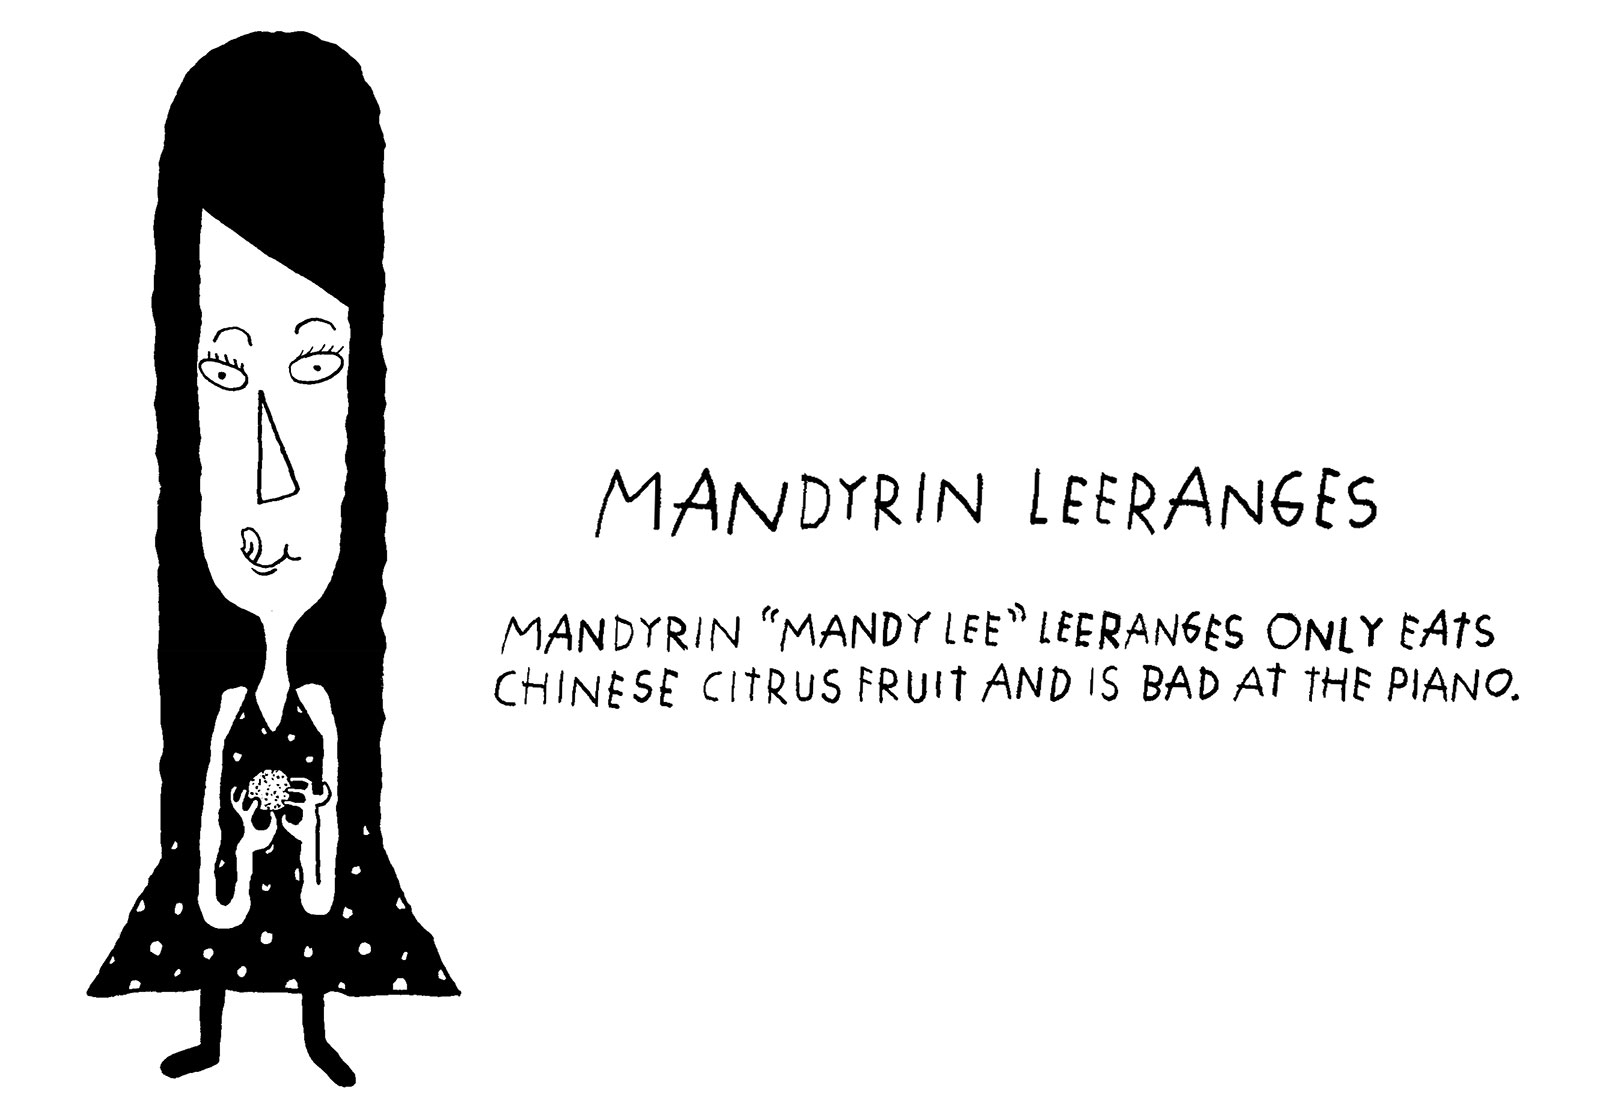 Mandyrin 'Mandy Lee' Leeranges only eats Chinese citrus fruit and is bad at the piano.